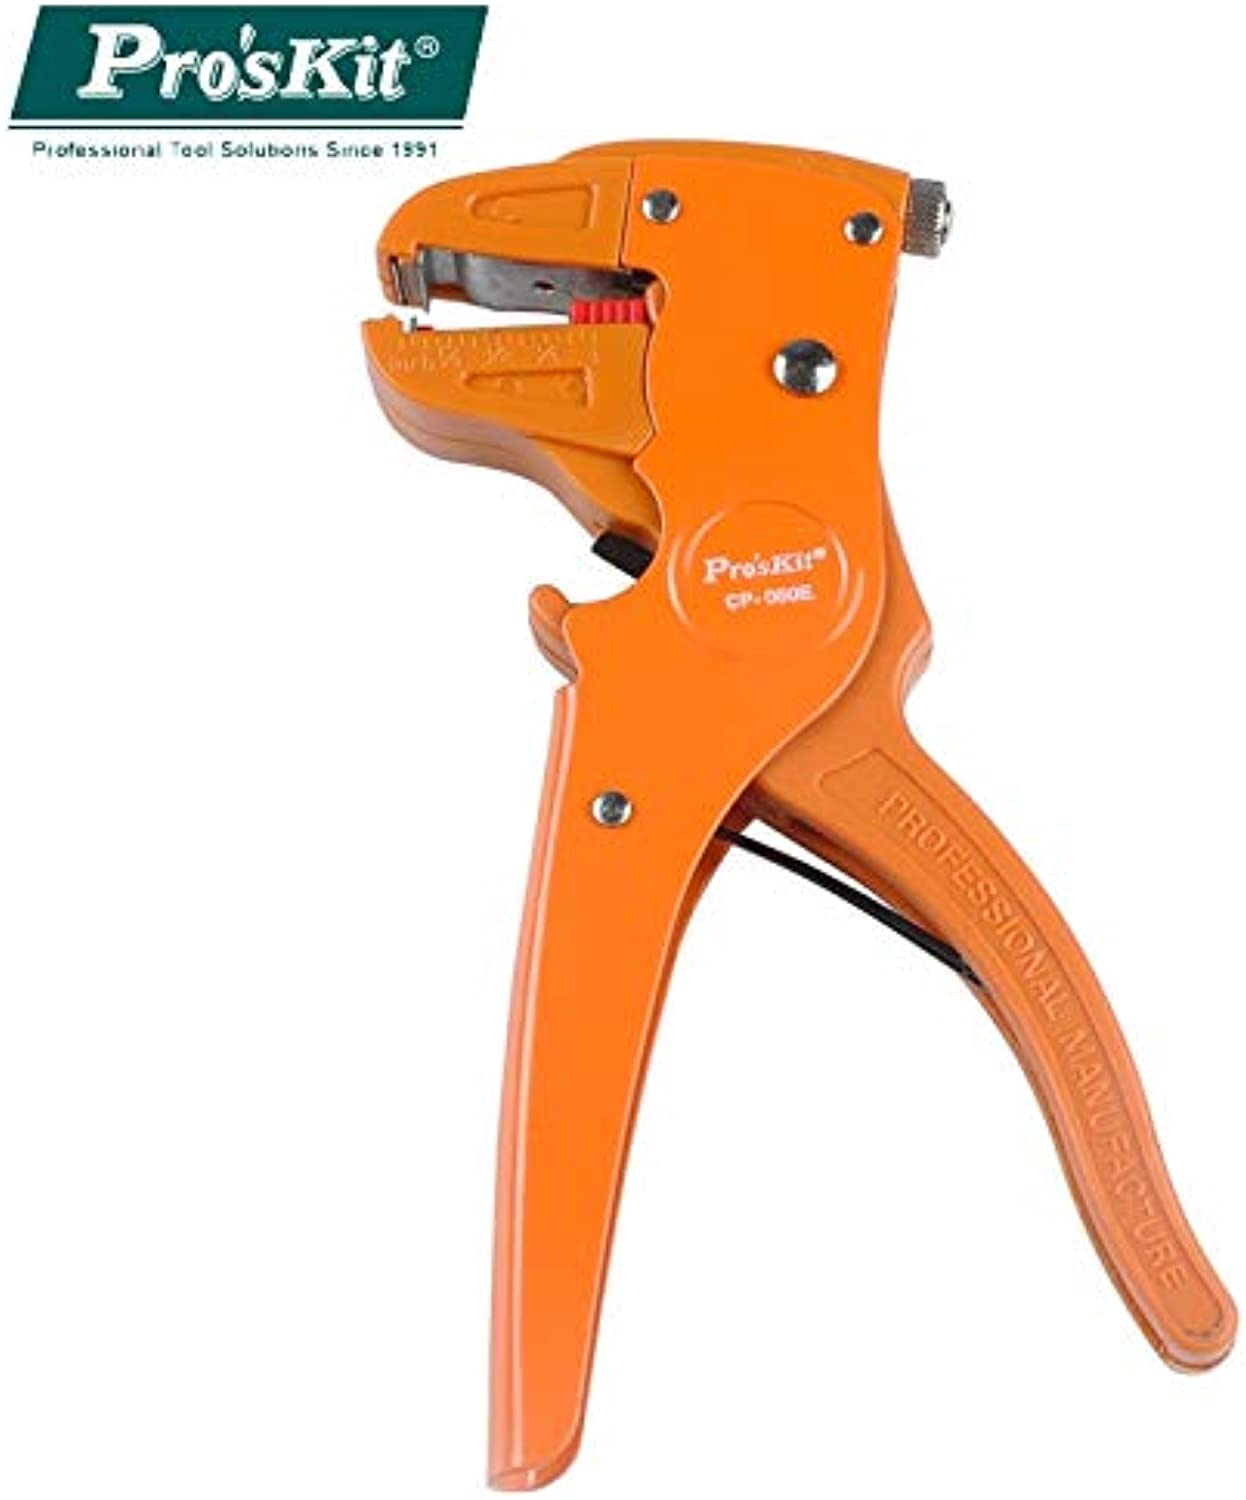 Pro'skit CP-080E 0.2-4.0mm2 Practical Duckbill Type Single Cable Wire Stripper Computer Cable Wire Stripper Duckbill Pliers